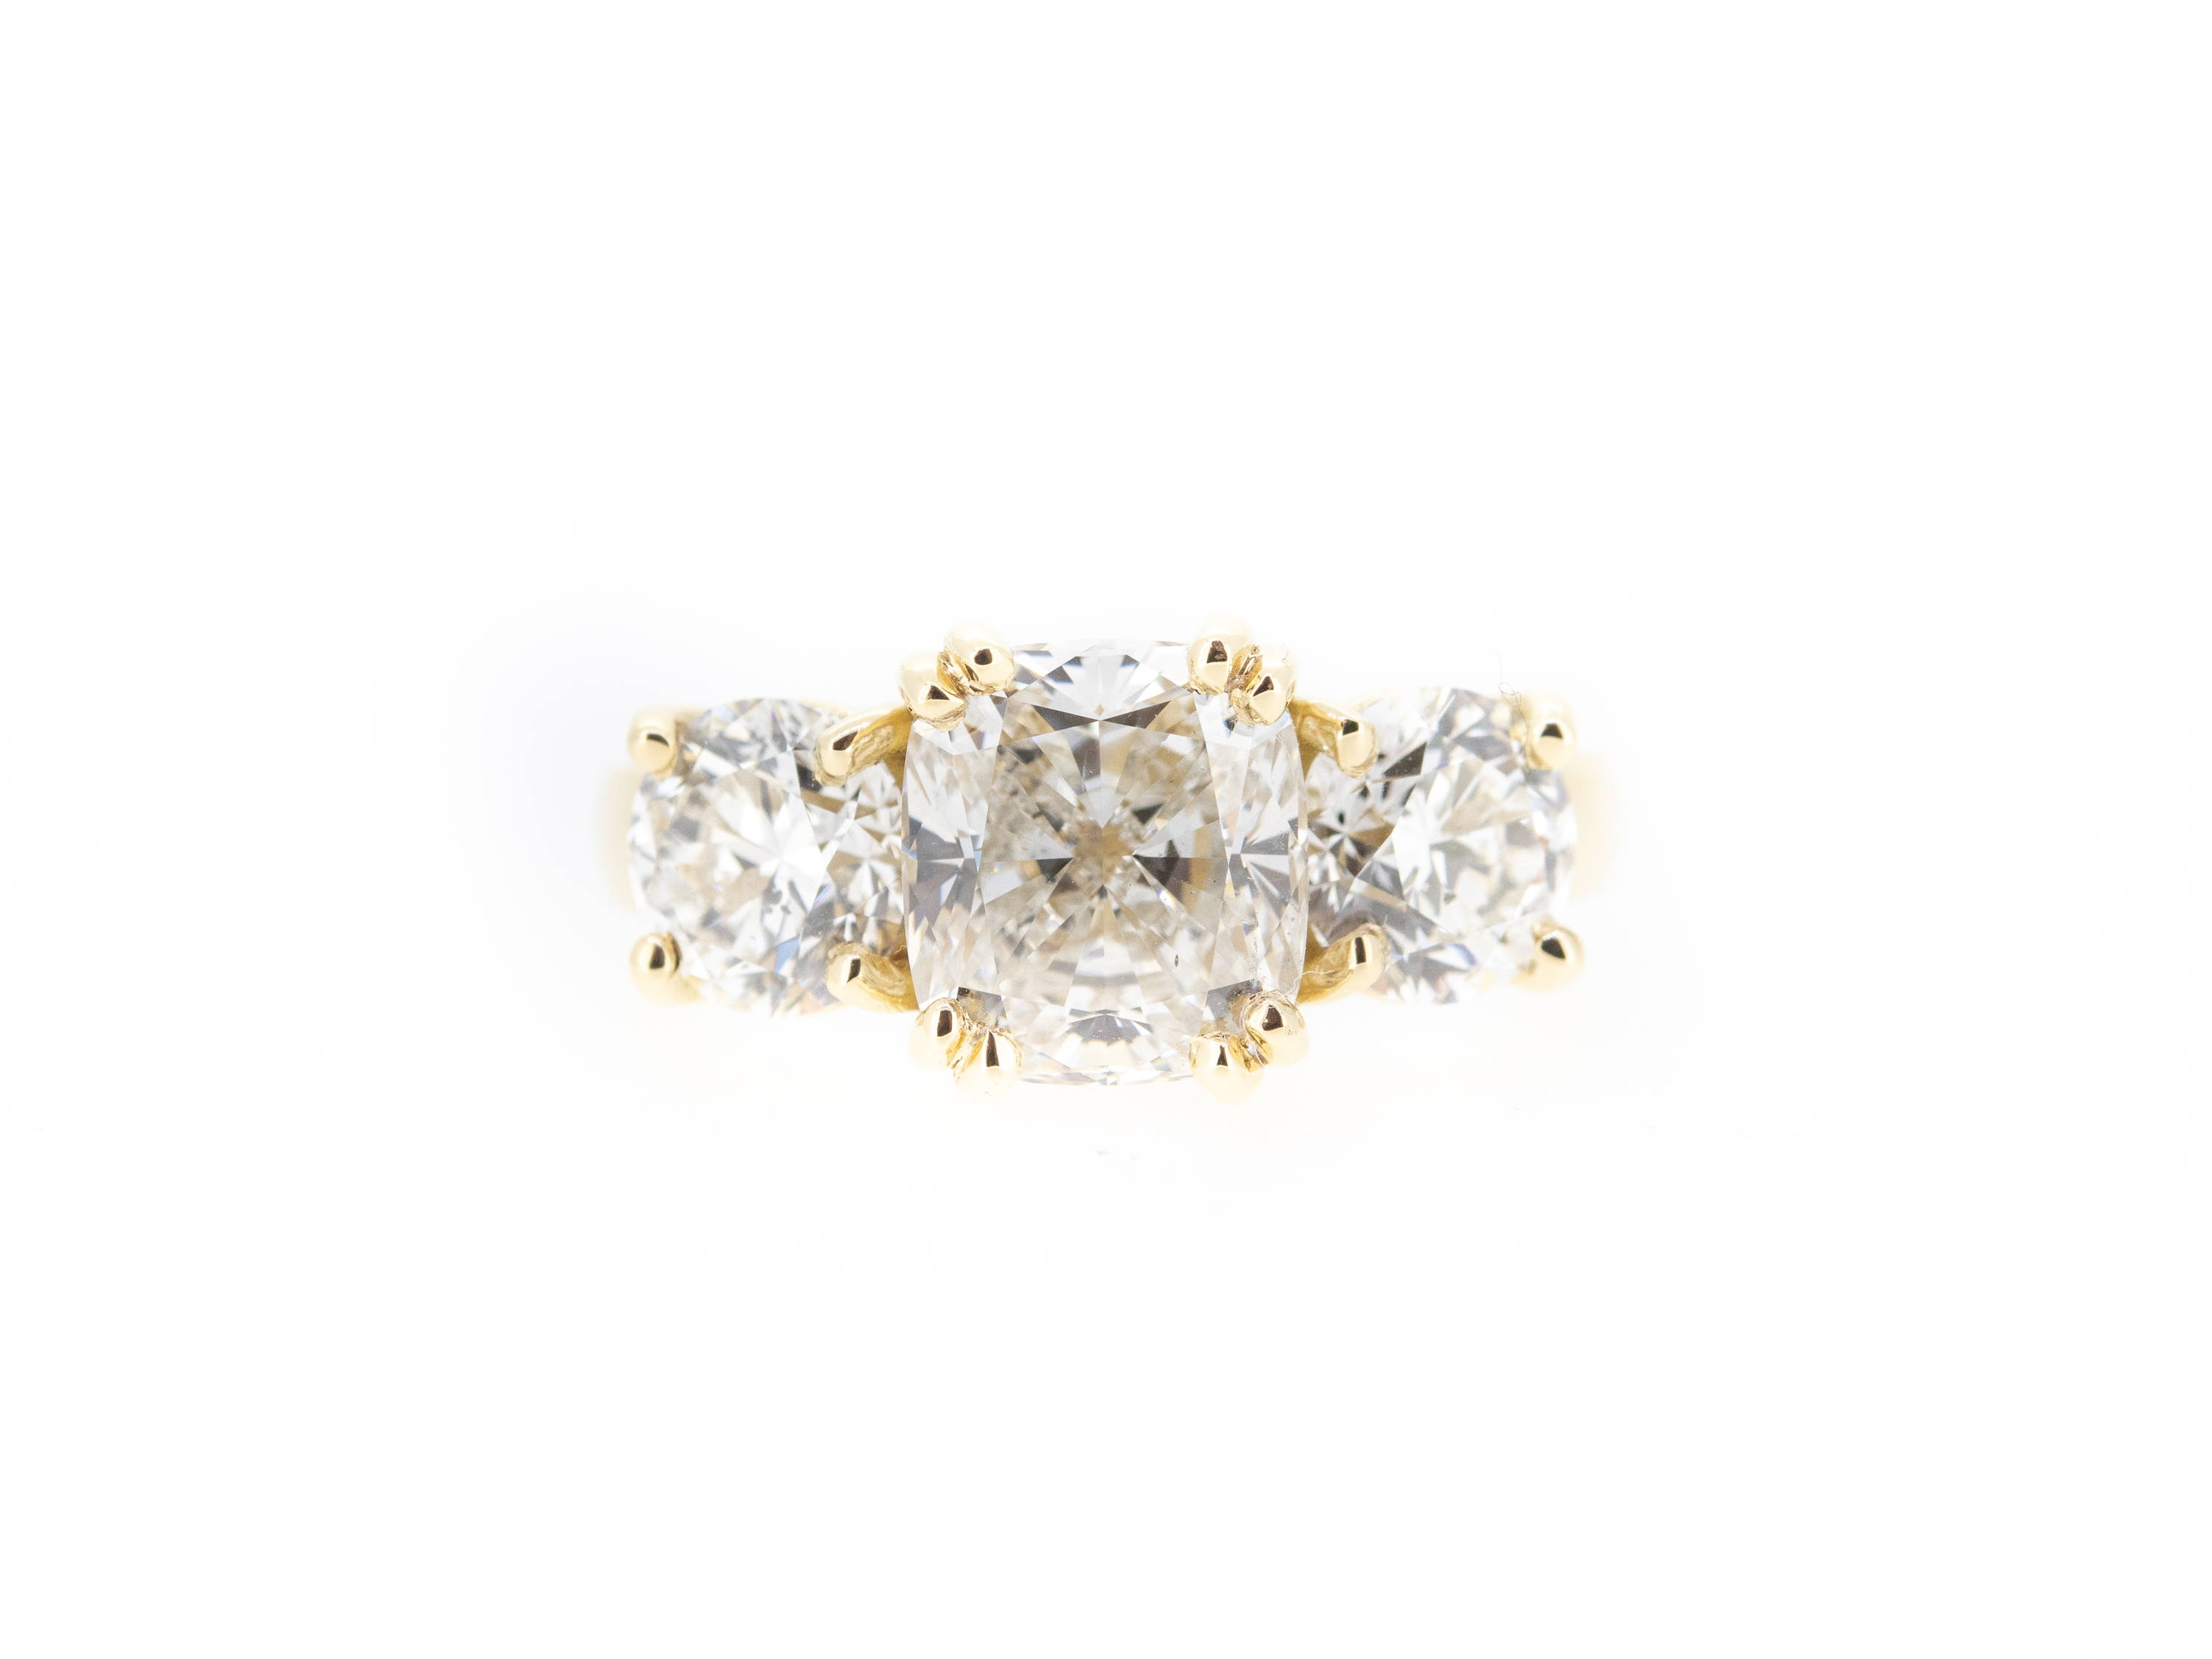 Whit's Engagement ring